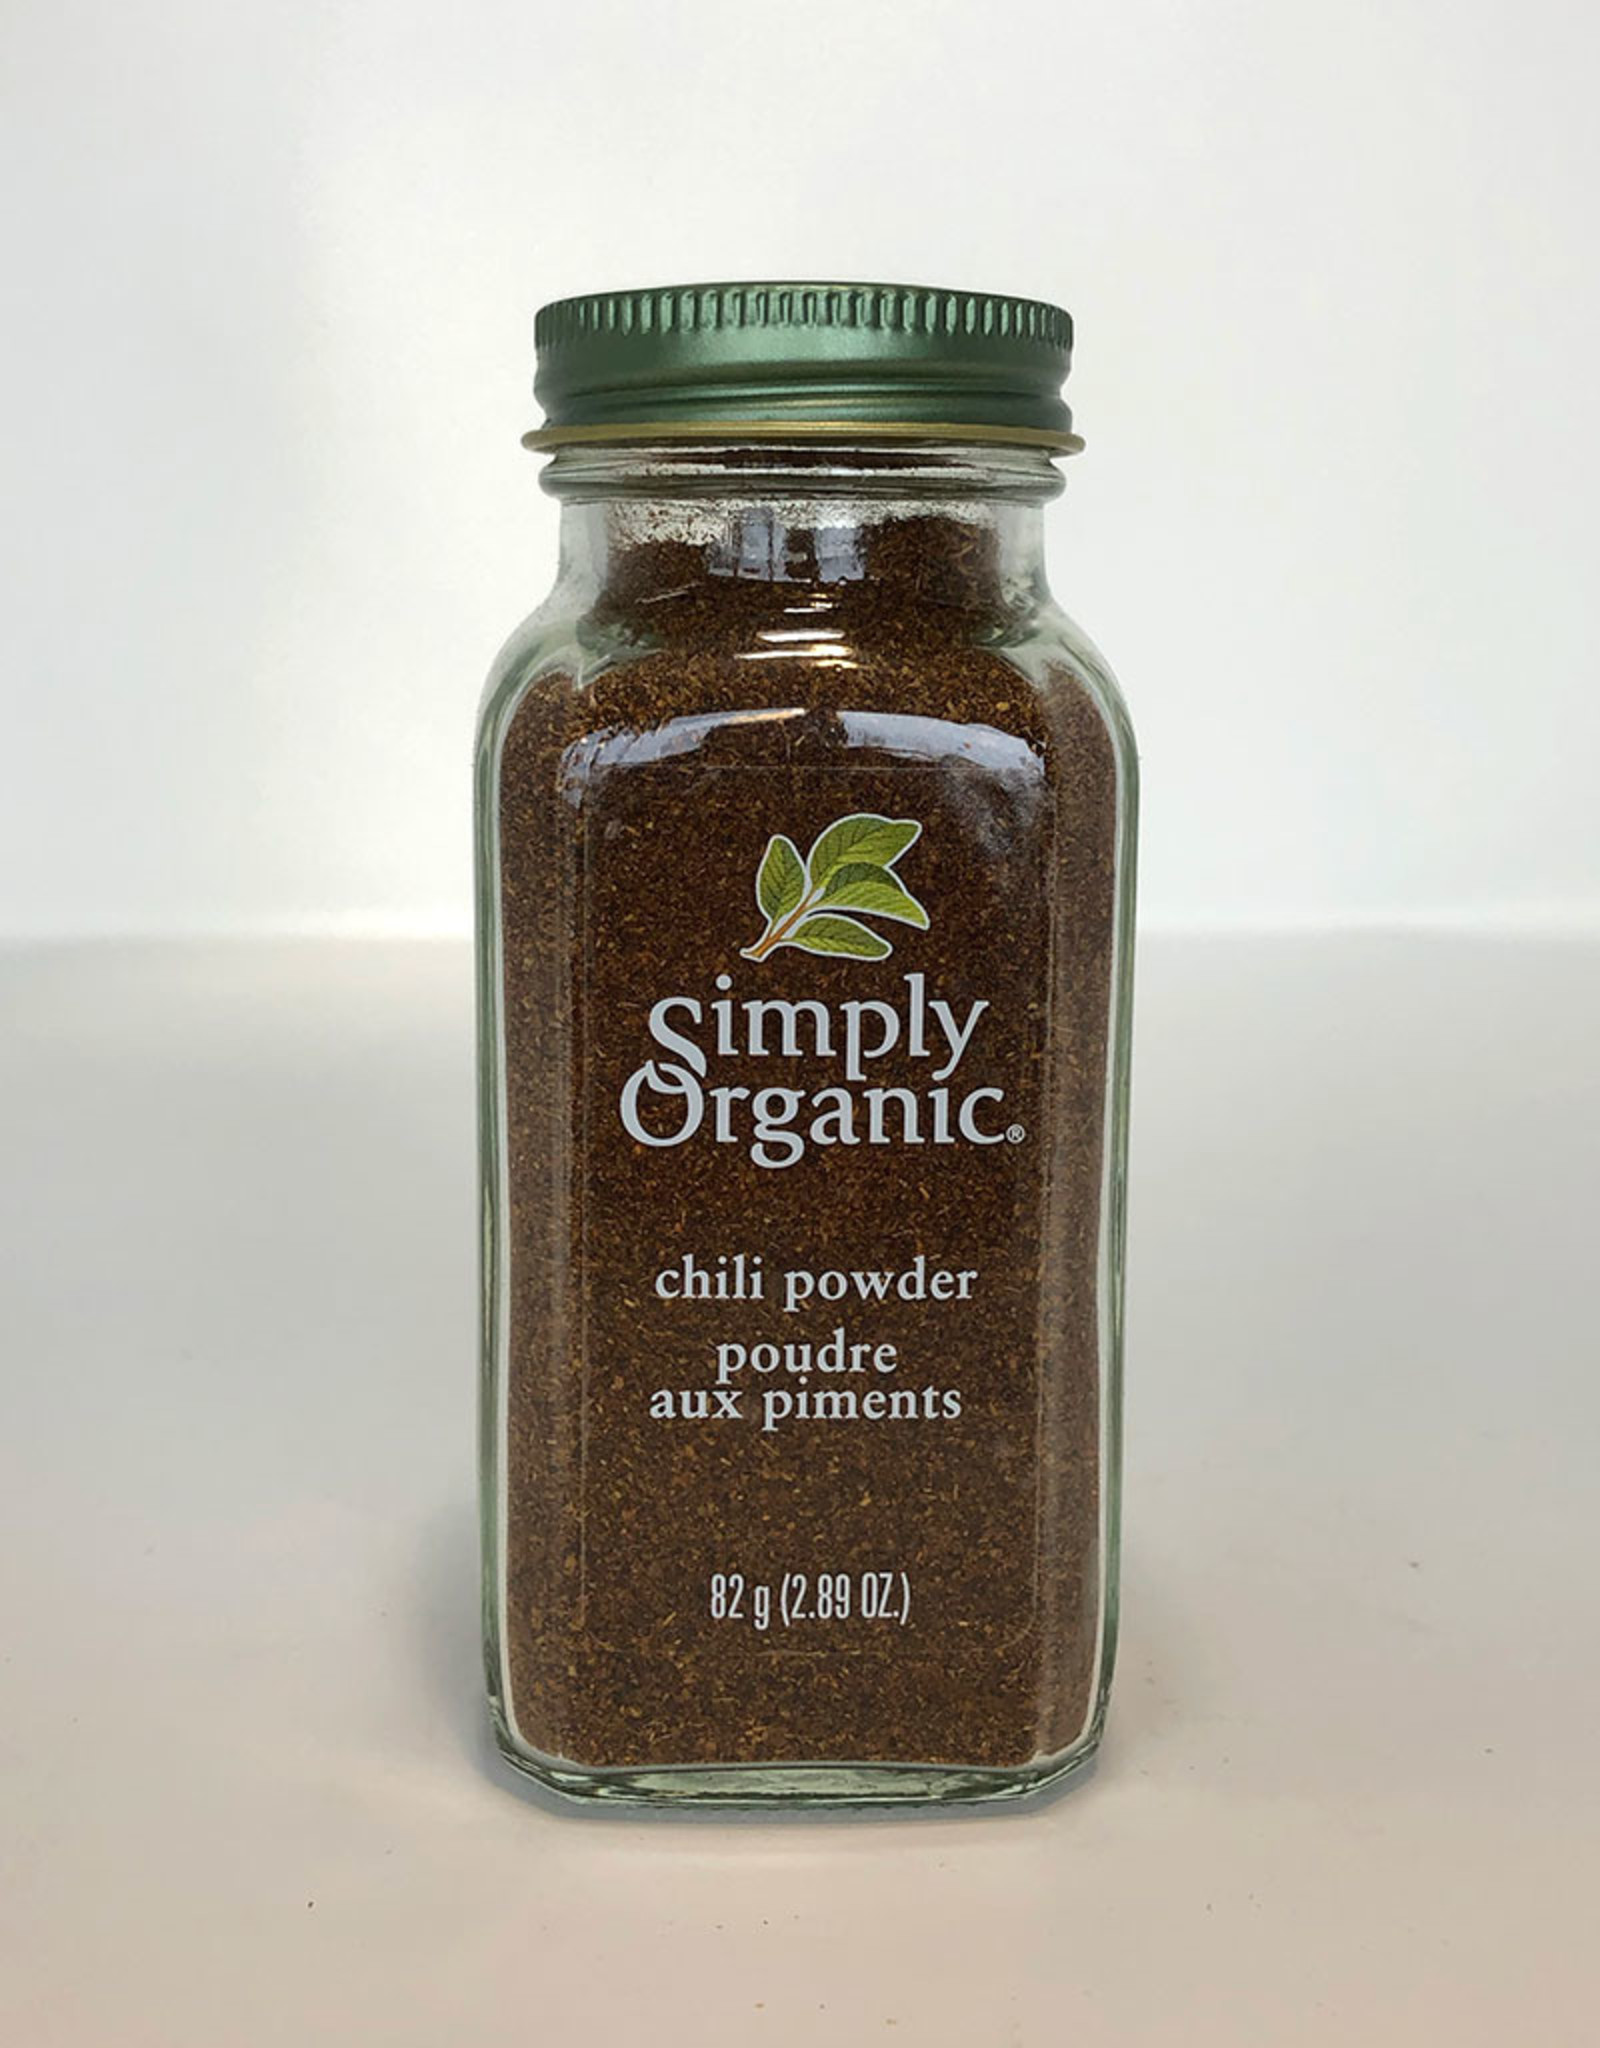 Simply Organic Simply Organic - Chili Powder (82g)